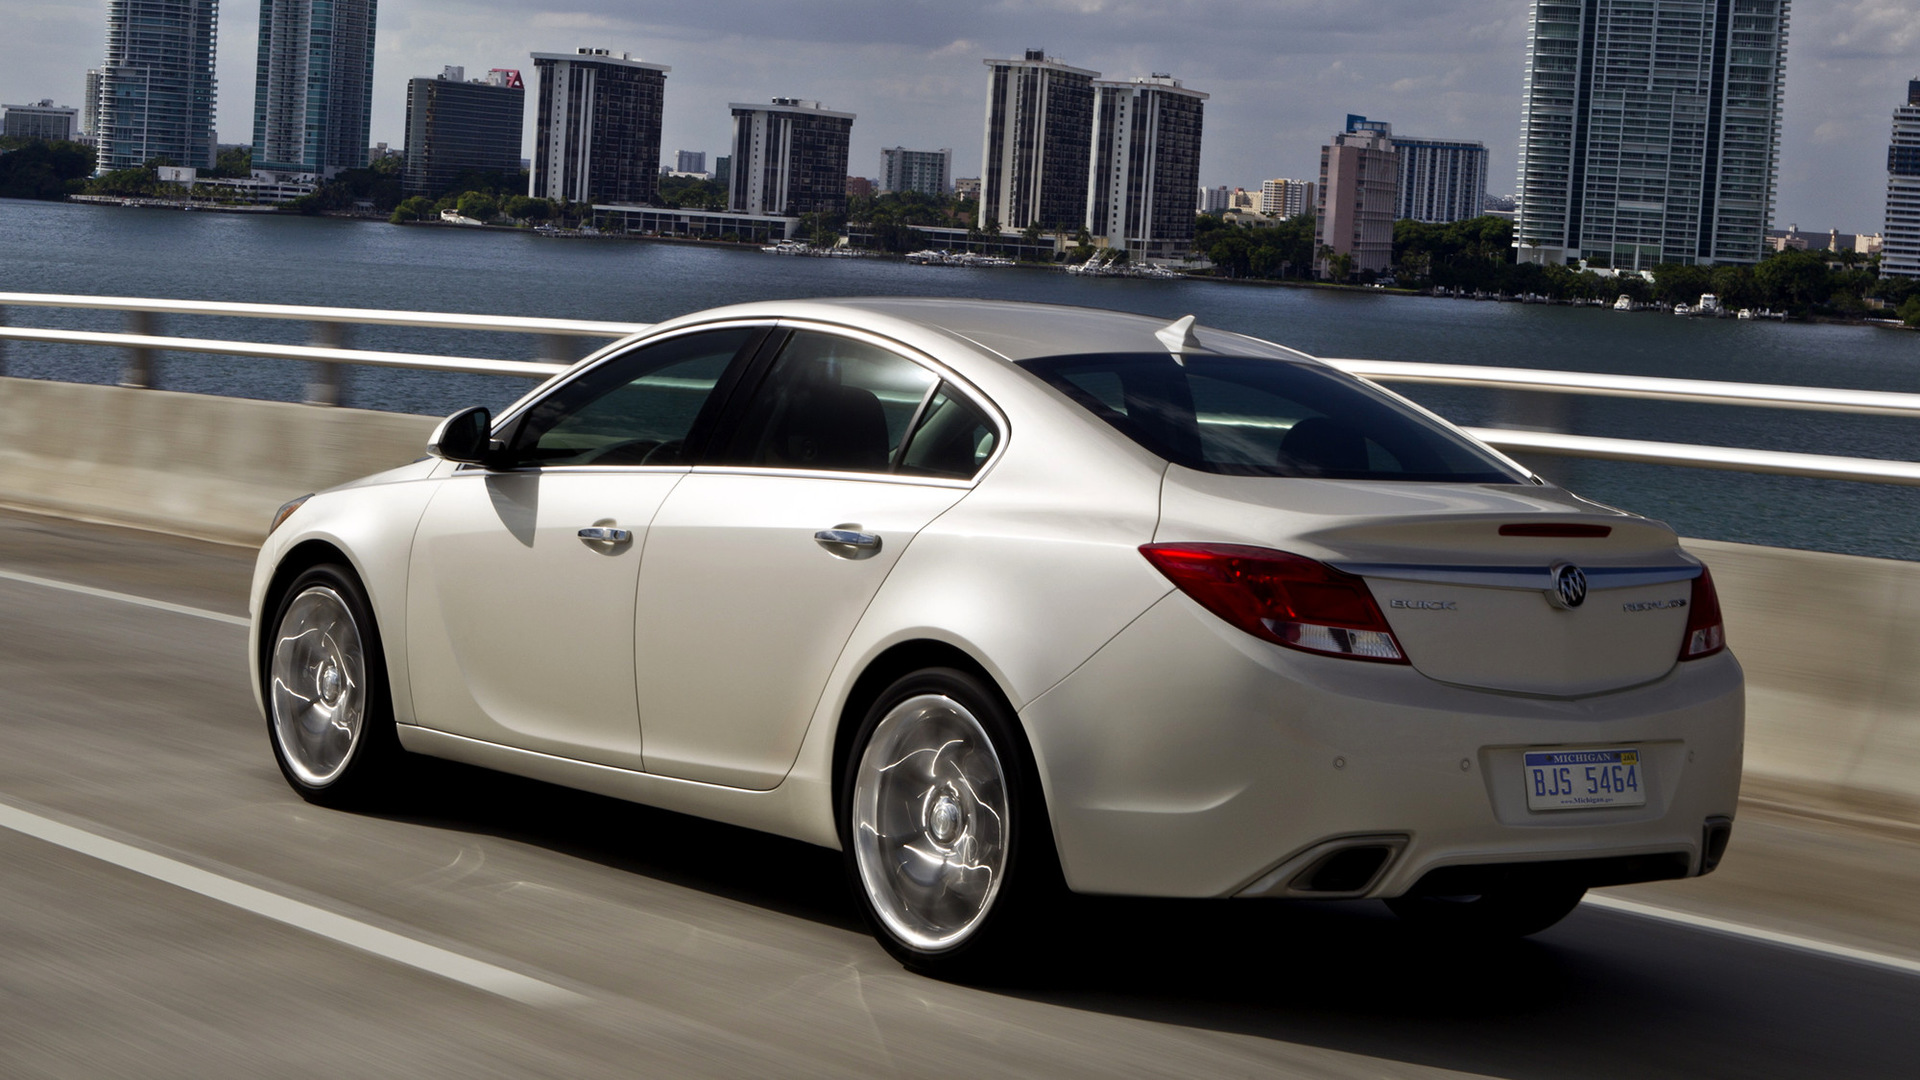 2011 buick regal gs - wallpapers and hd images | car pixel